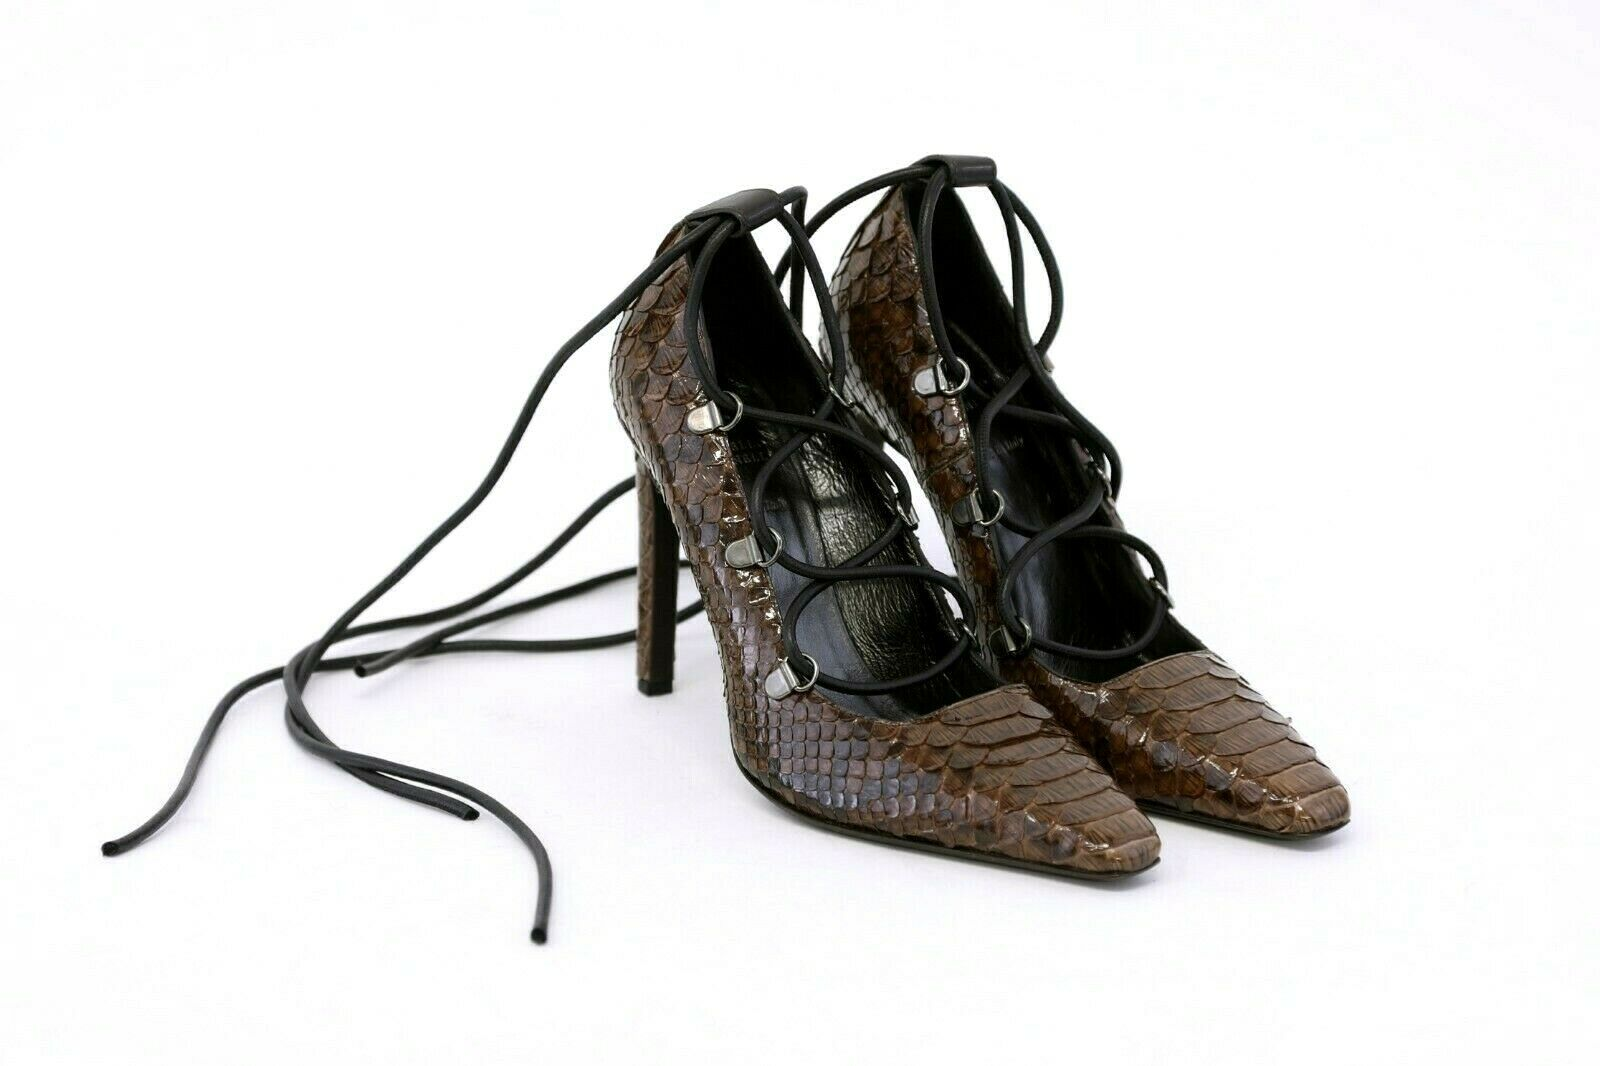 NWOB Brunello Cucinelli Women's Glossy Python Leather Lace-Up Pumps 37  7US A191